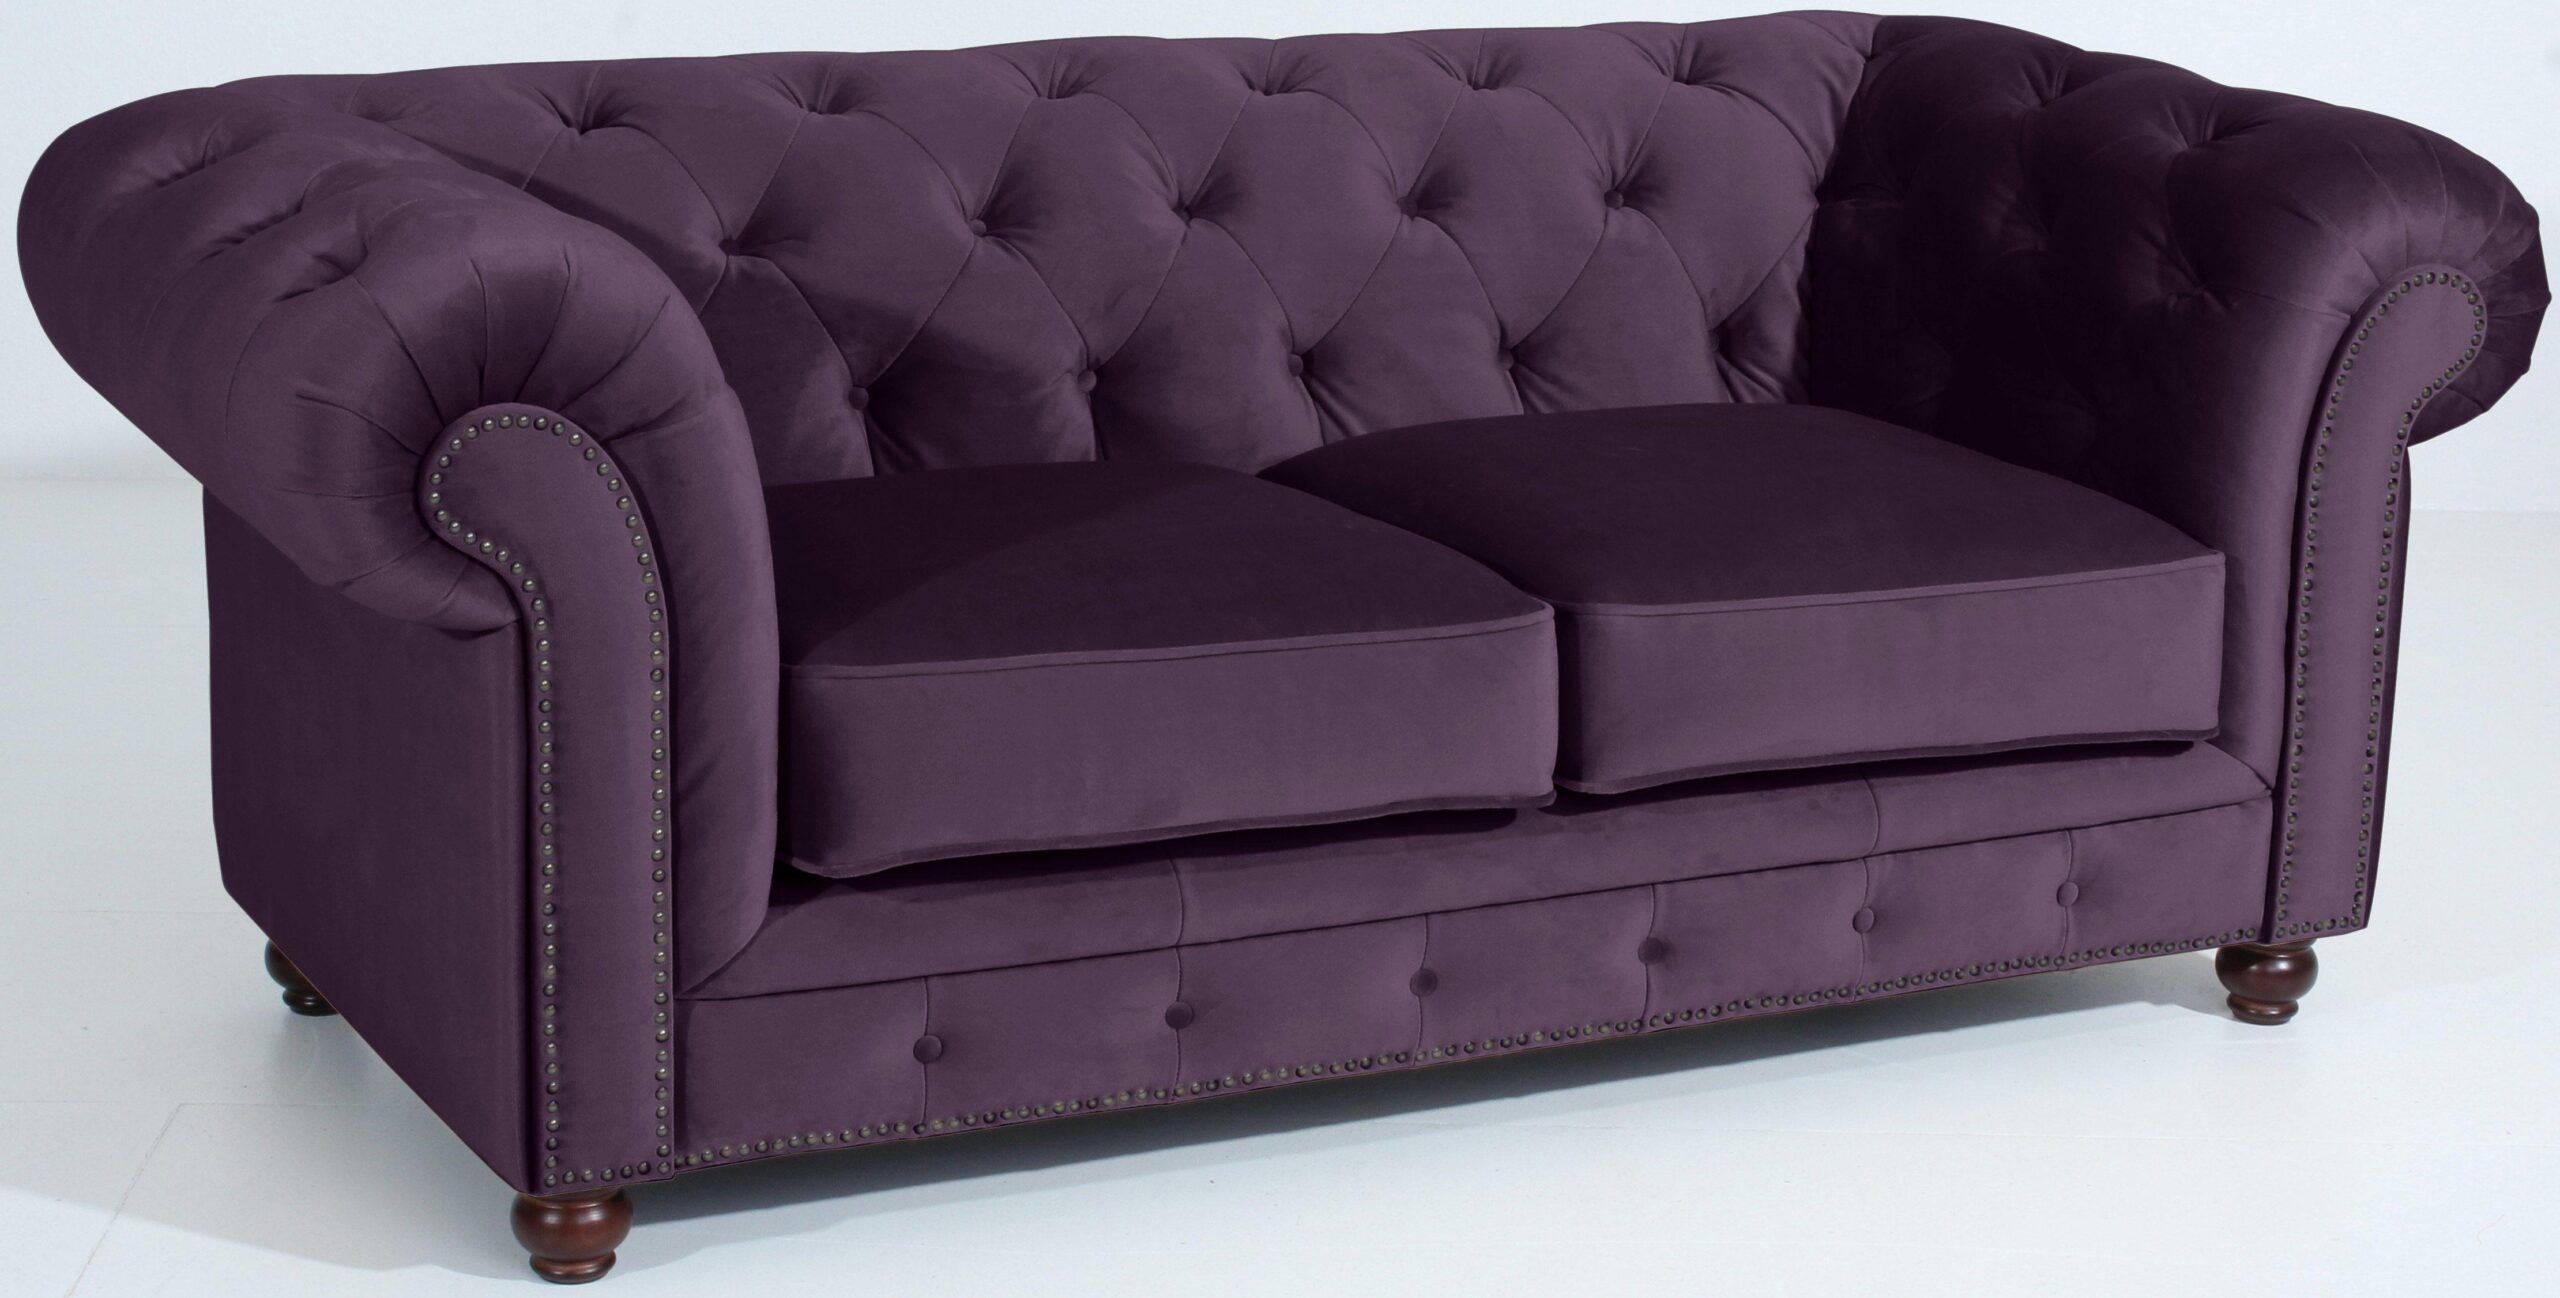 Full Size of Lilac Sofa Bed Uk Set Lilah Raymour And Flanigan Lila Chair Salon Cushions Samt Covers 3 Piece Suite Living Room Polyester Chesterfield Sofas Online Kaufen Mbel Sofa Sofa Lila